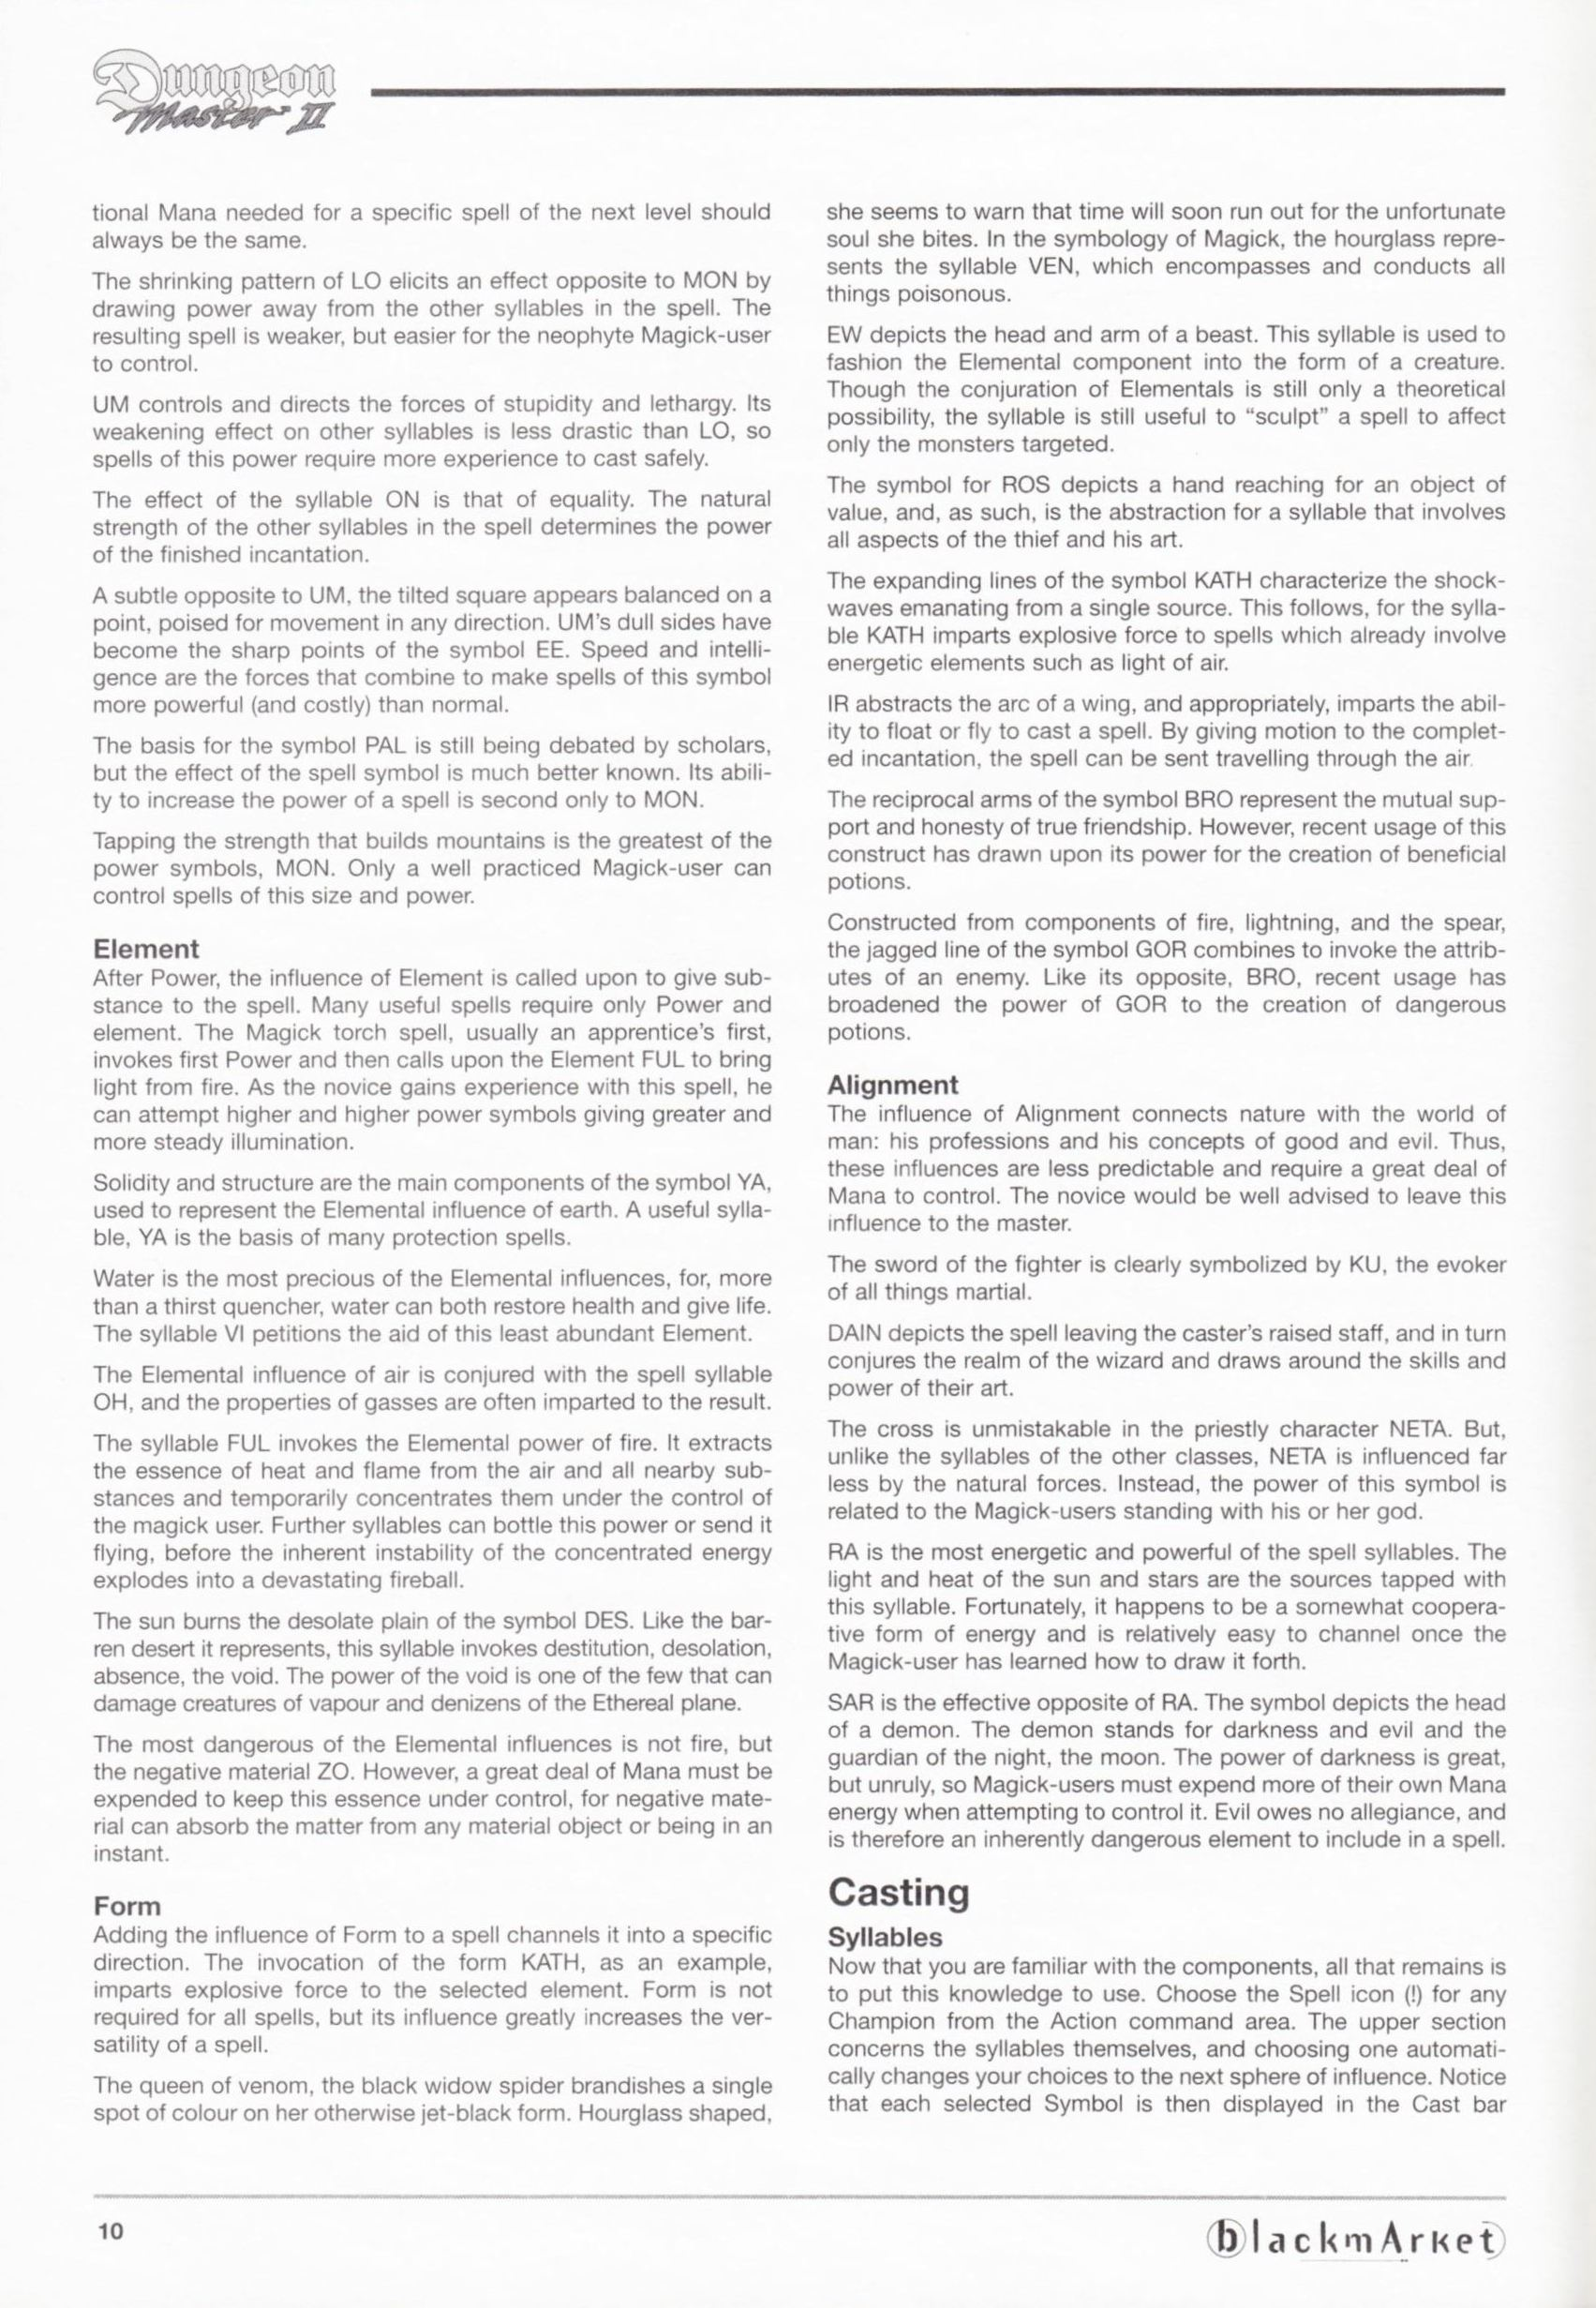 Game - Dungeon Master II - DE - PC - Blackmarket With Manual - Manual - Page 012 - Scan